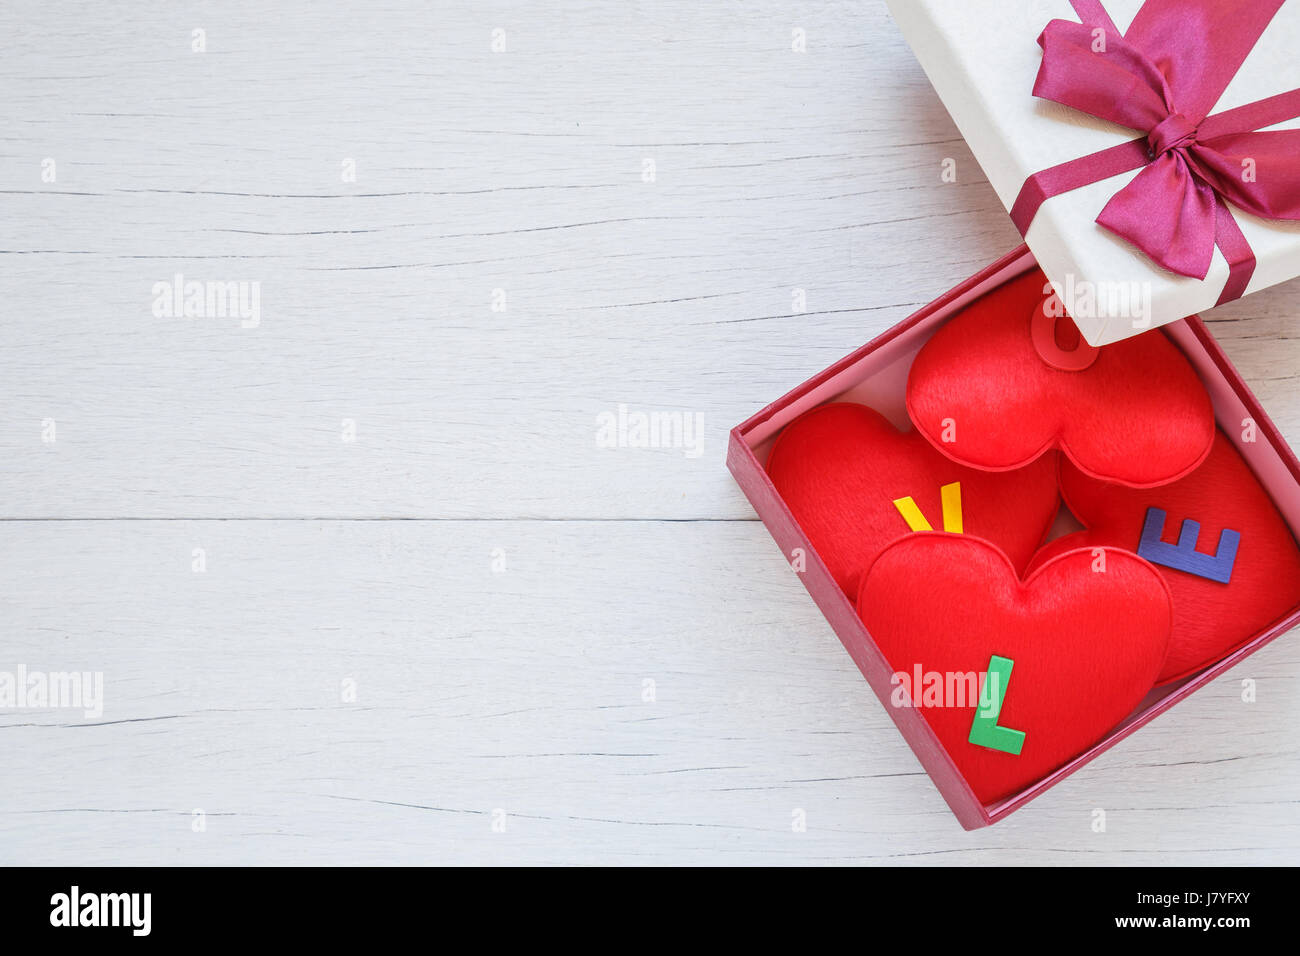 Top View Red Heart Shape With Love Word In Gift Box With Ribbon On White Wooden Plank Background For Love Or Valentine Day Concept